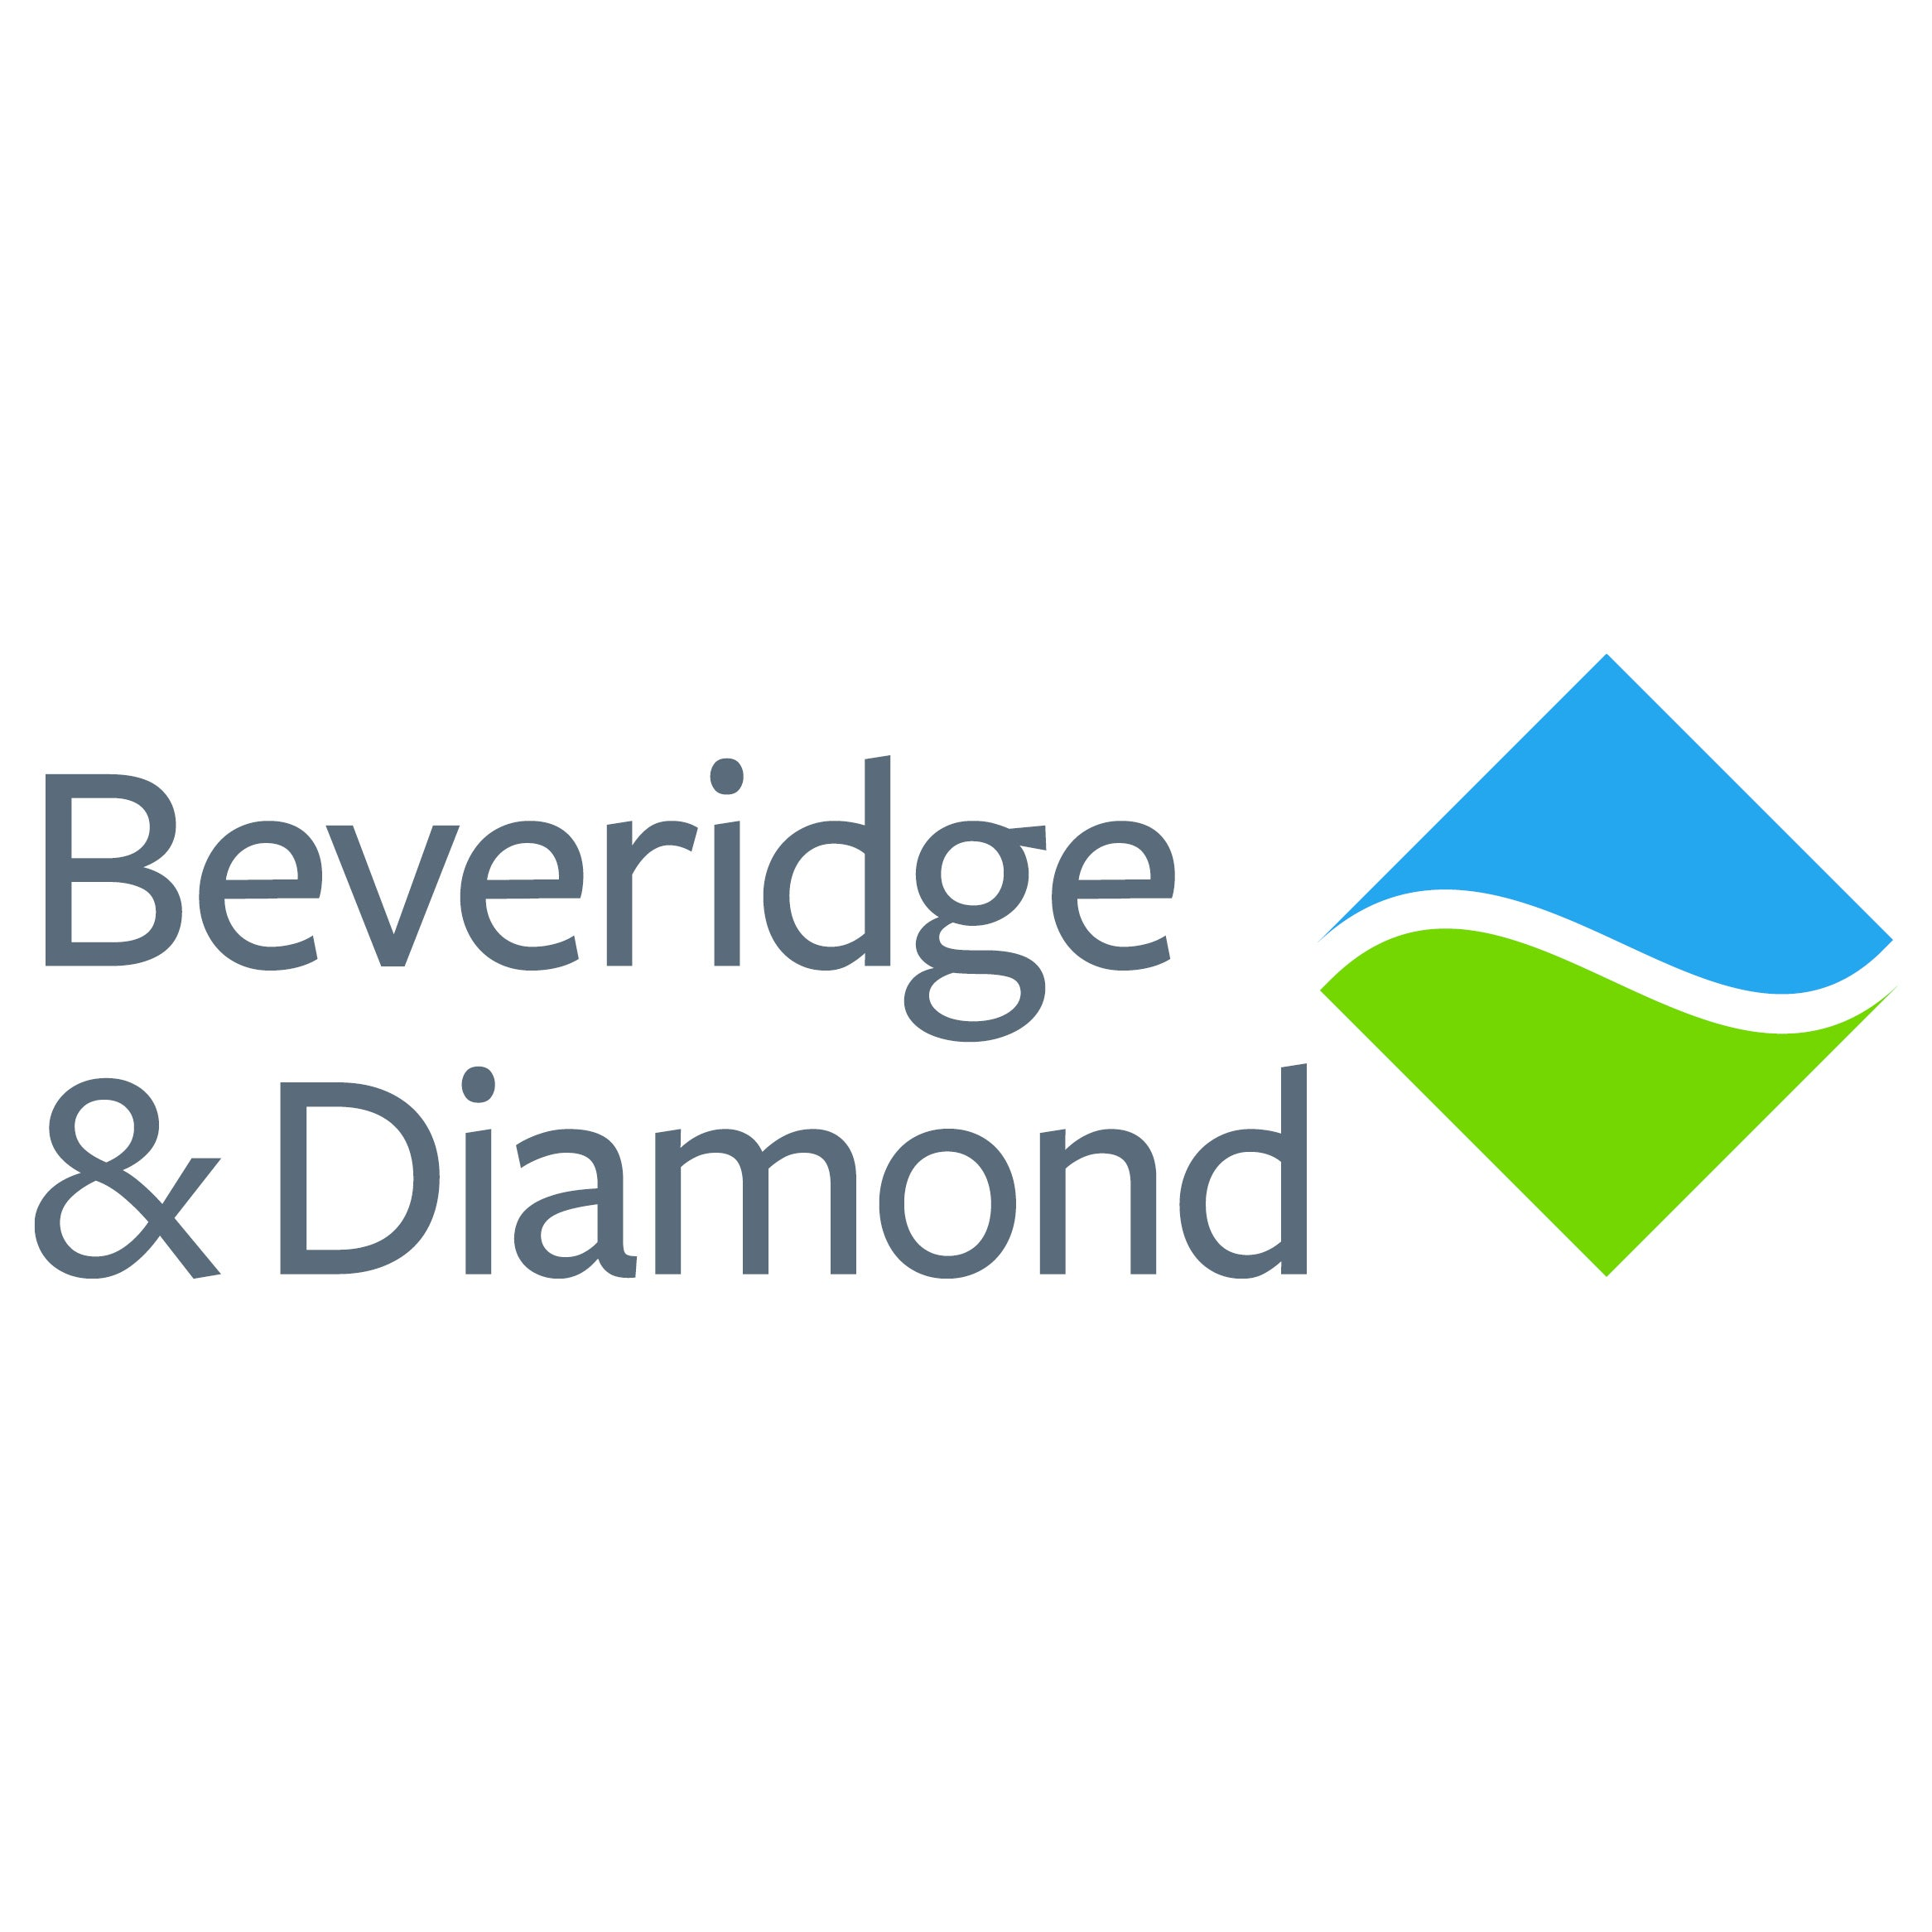 Beveridge & Diamond Ad 560x560